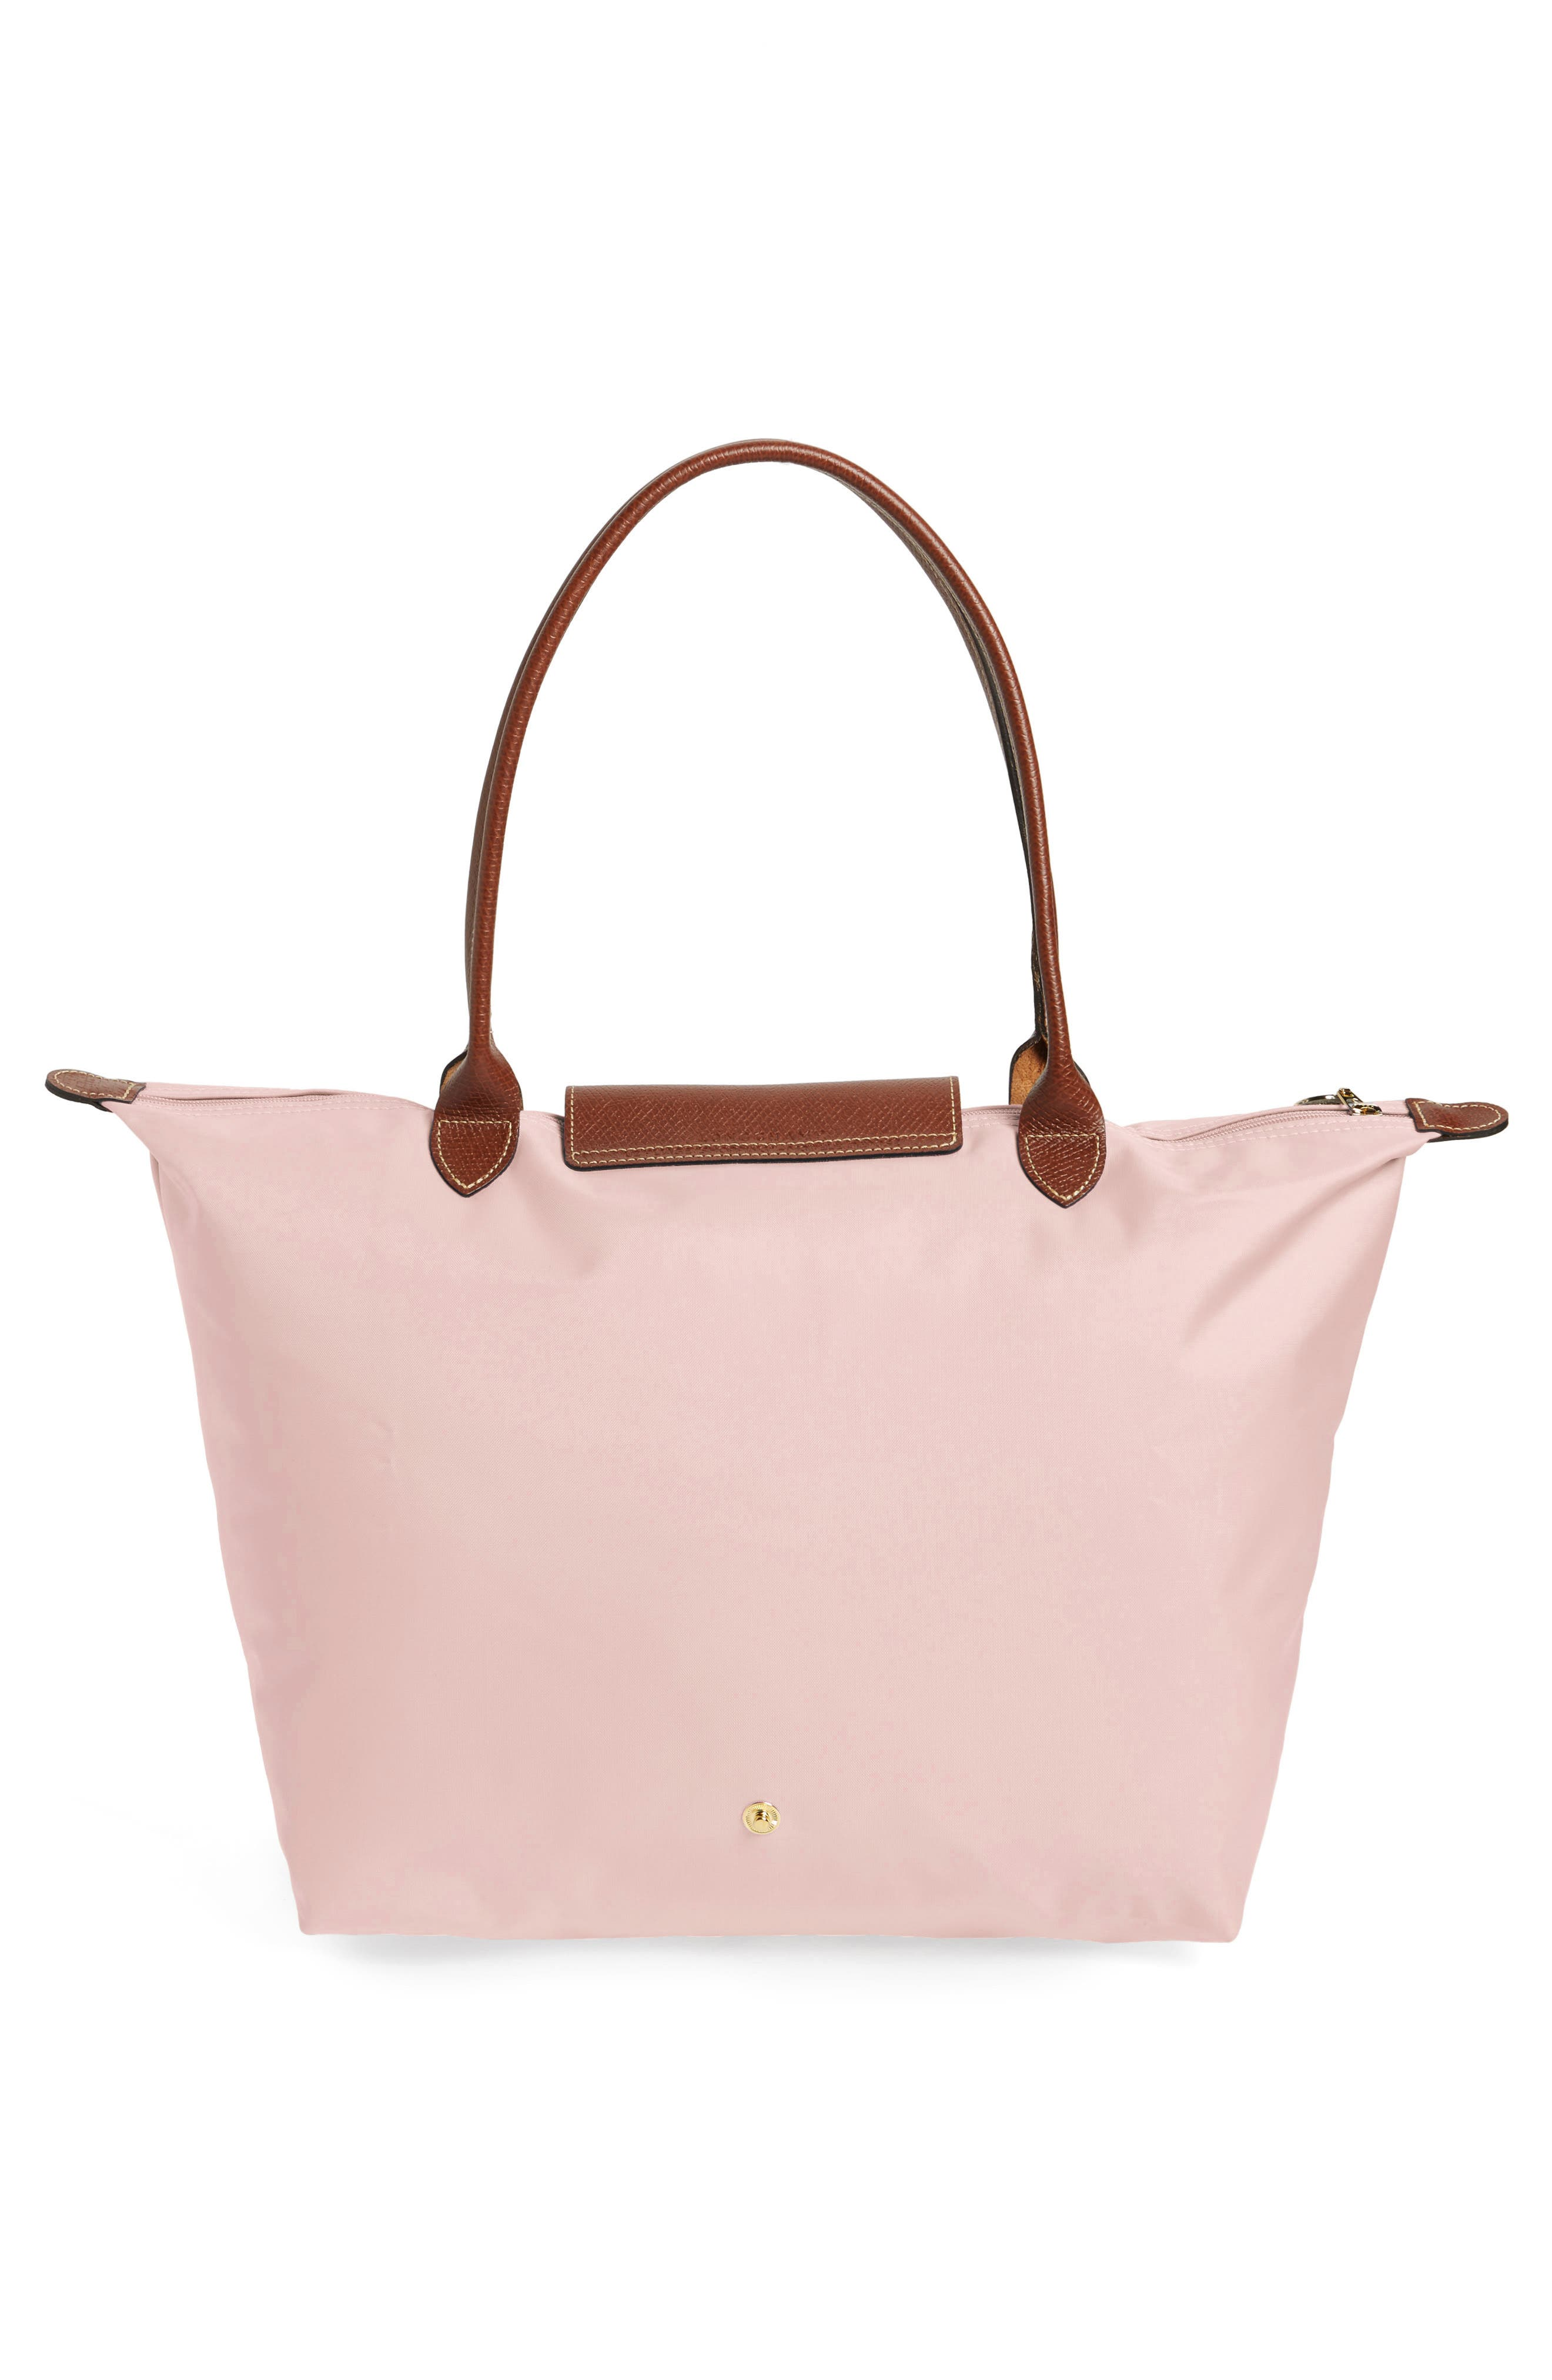 LONGCHAMP, Large Le Pliage Tote, Alternate thumbnail 4, color, PINK ICE